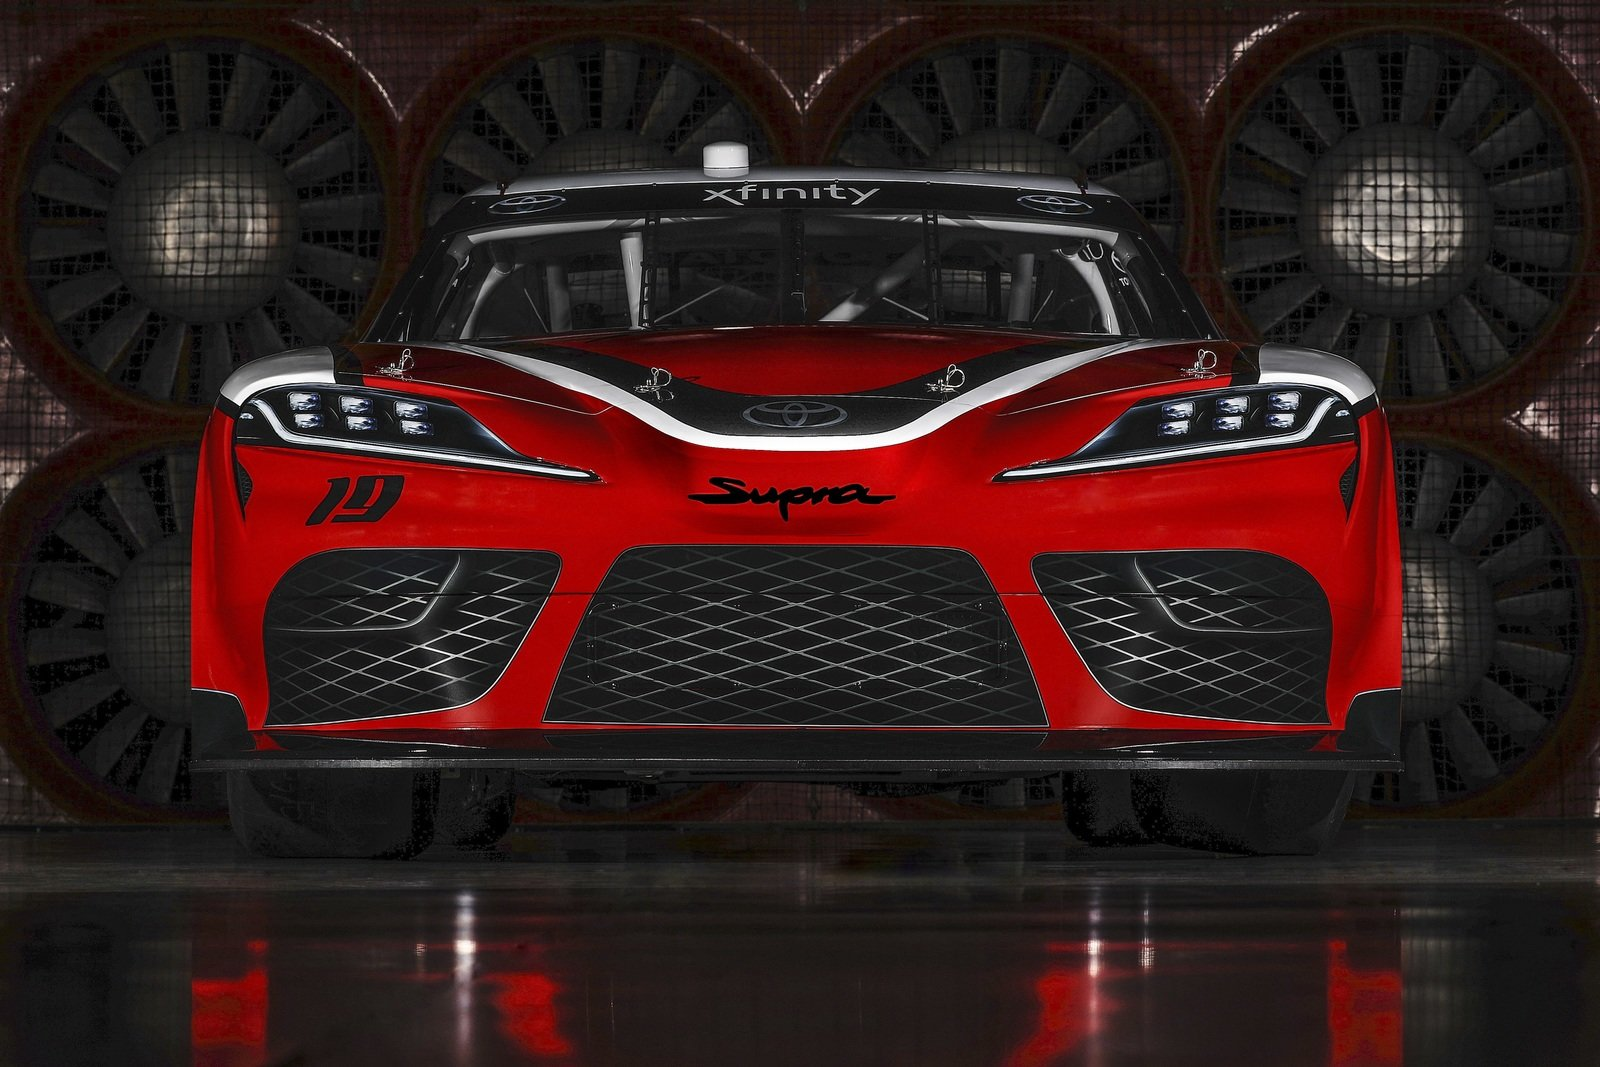 Nascar Racing Games >> The Toyota Supra Will Take On The Mustang And The Camaro In NASCAR's 2019 Season | Top Speed